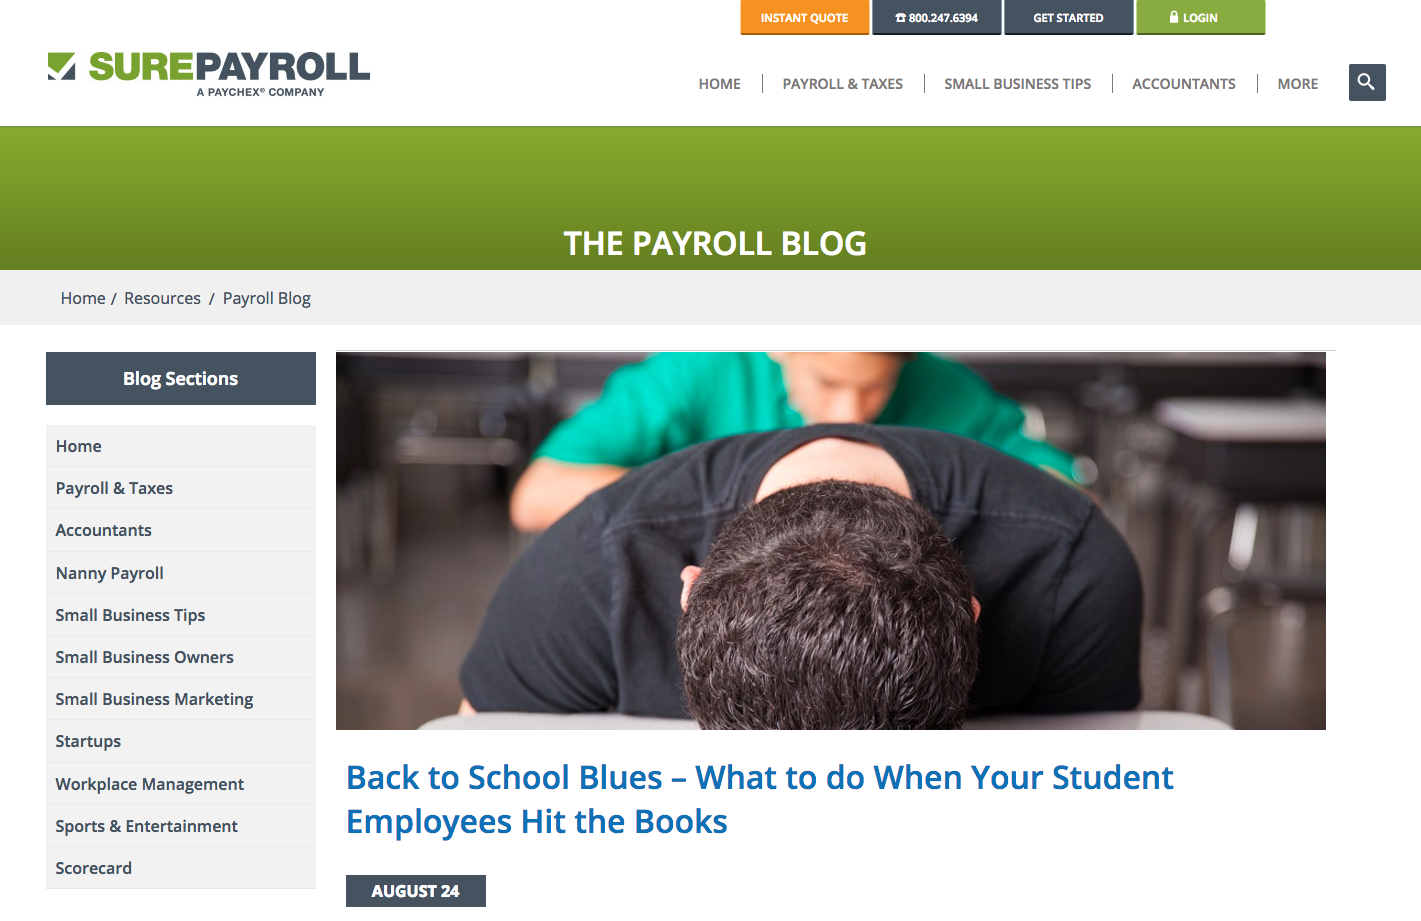 Sure Payroll B2B Content Marketing Examples